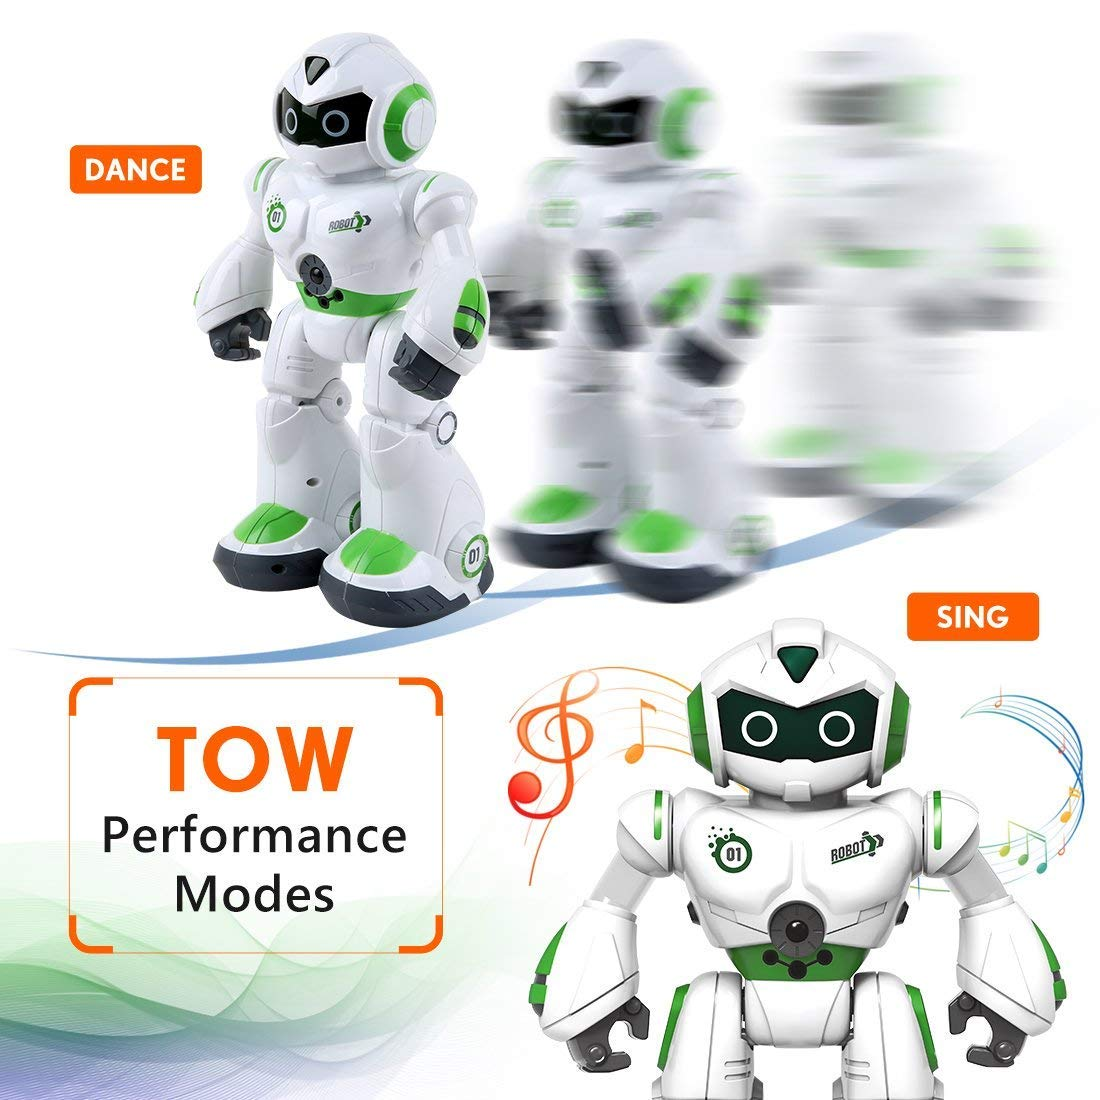 Remote Control Robot,Robot Toys,Smart Robotics for Kids with Gesture Sense, Interactive Walking Singing Dancing Speaking,with LED Light, Shoots Missiles, Talking, Walking, Singing, Educational Toys by Locke Teddy (Image #6)